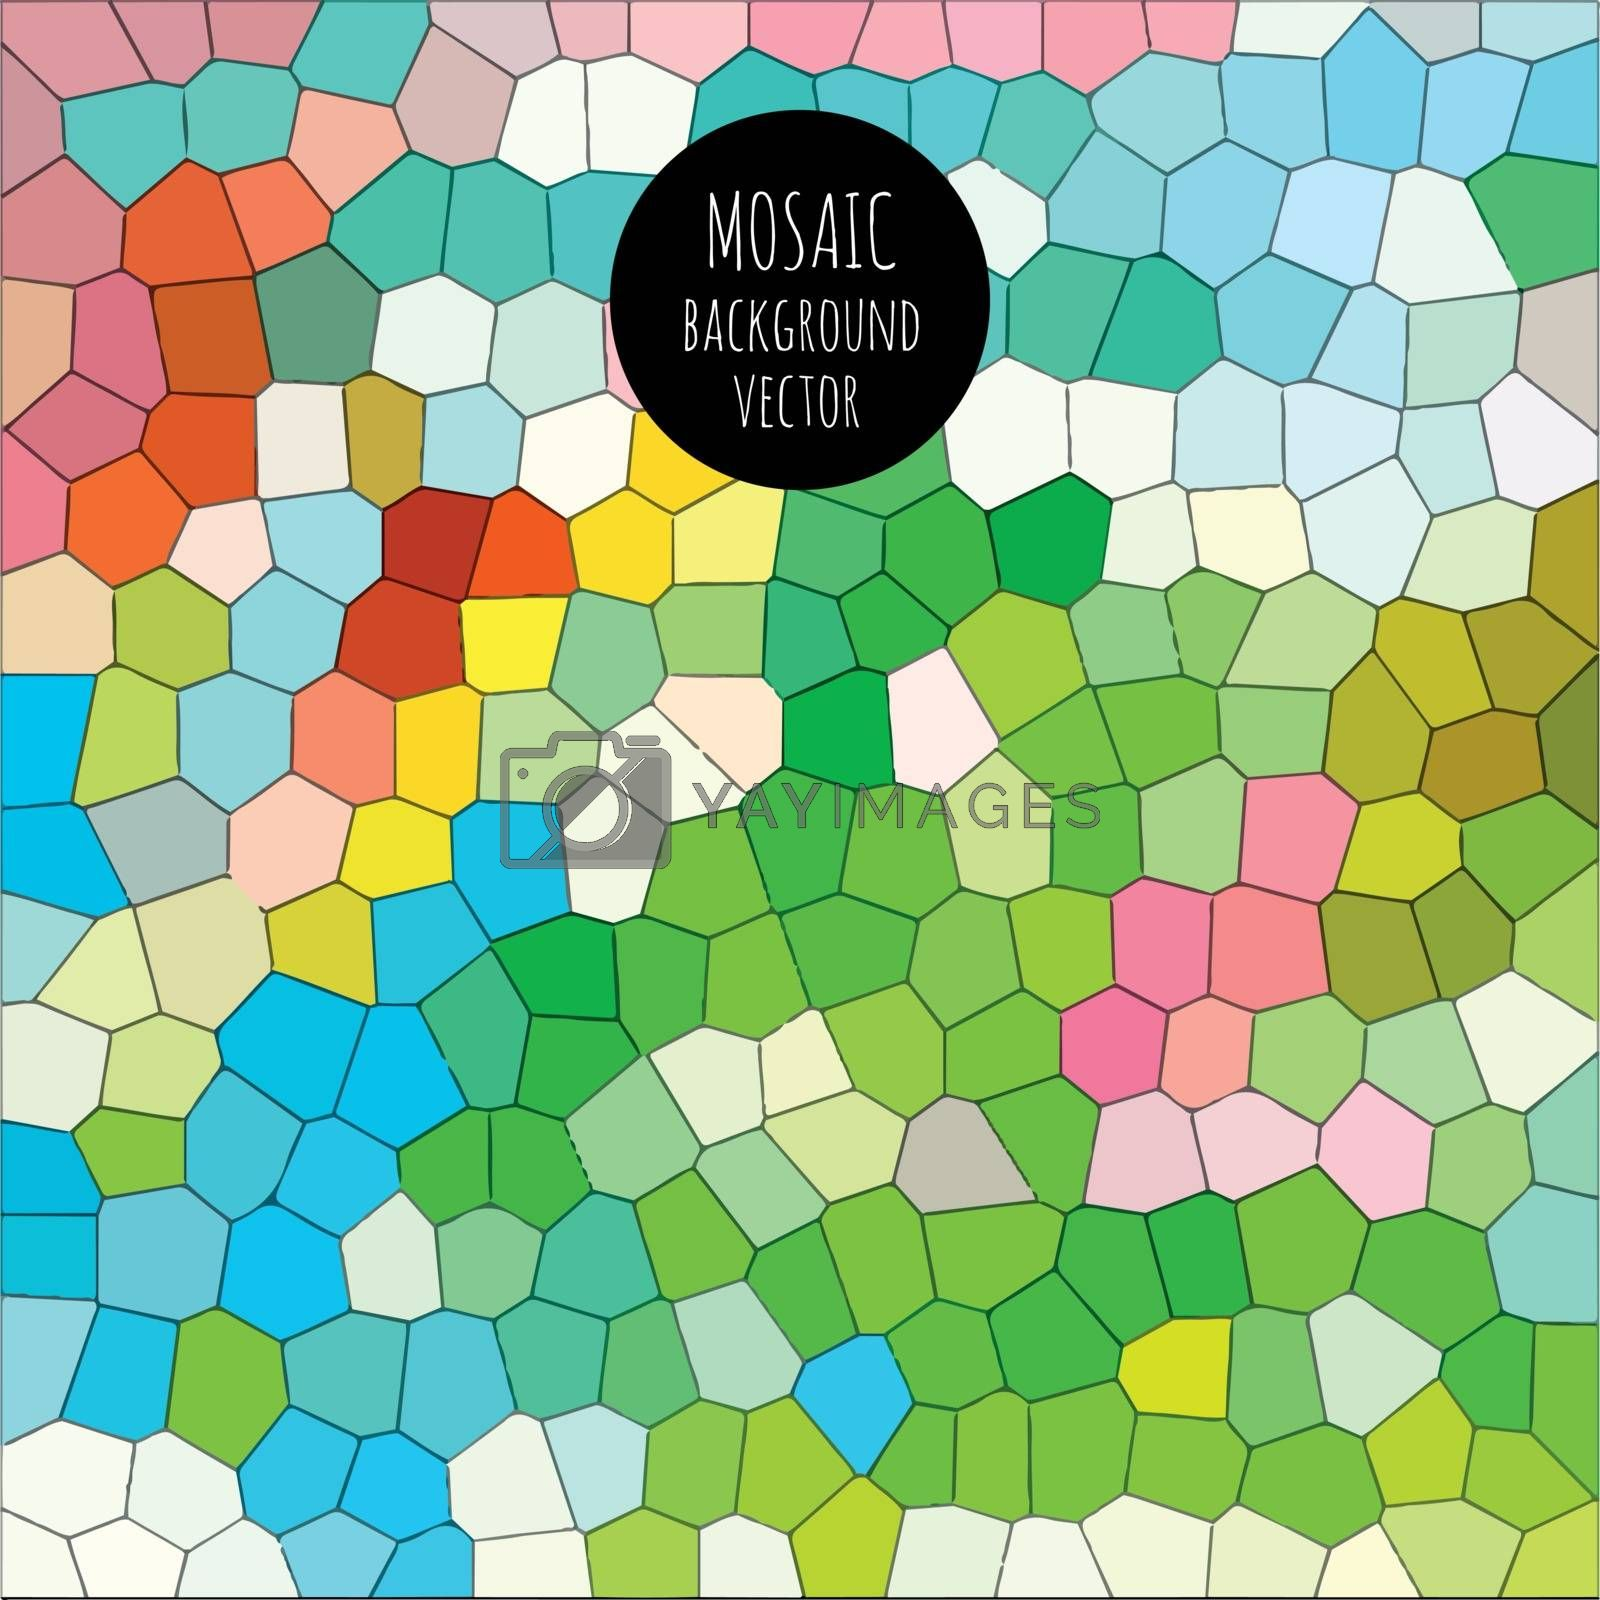 Mosaic background by kartyl